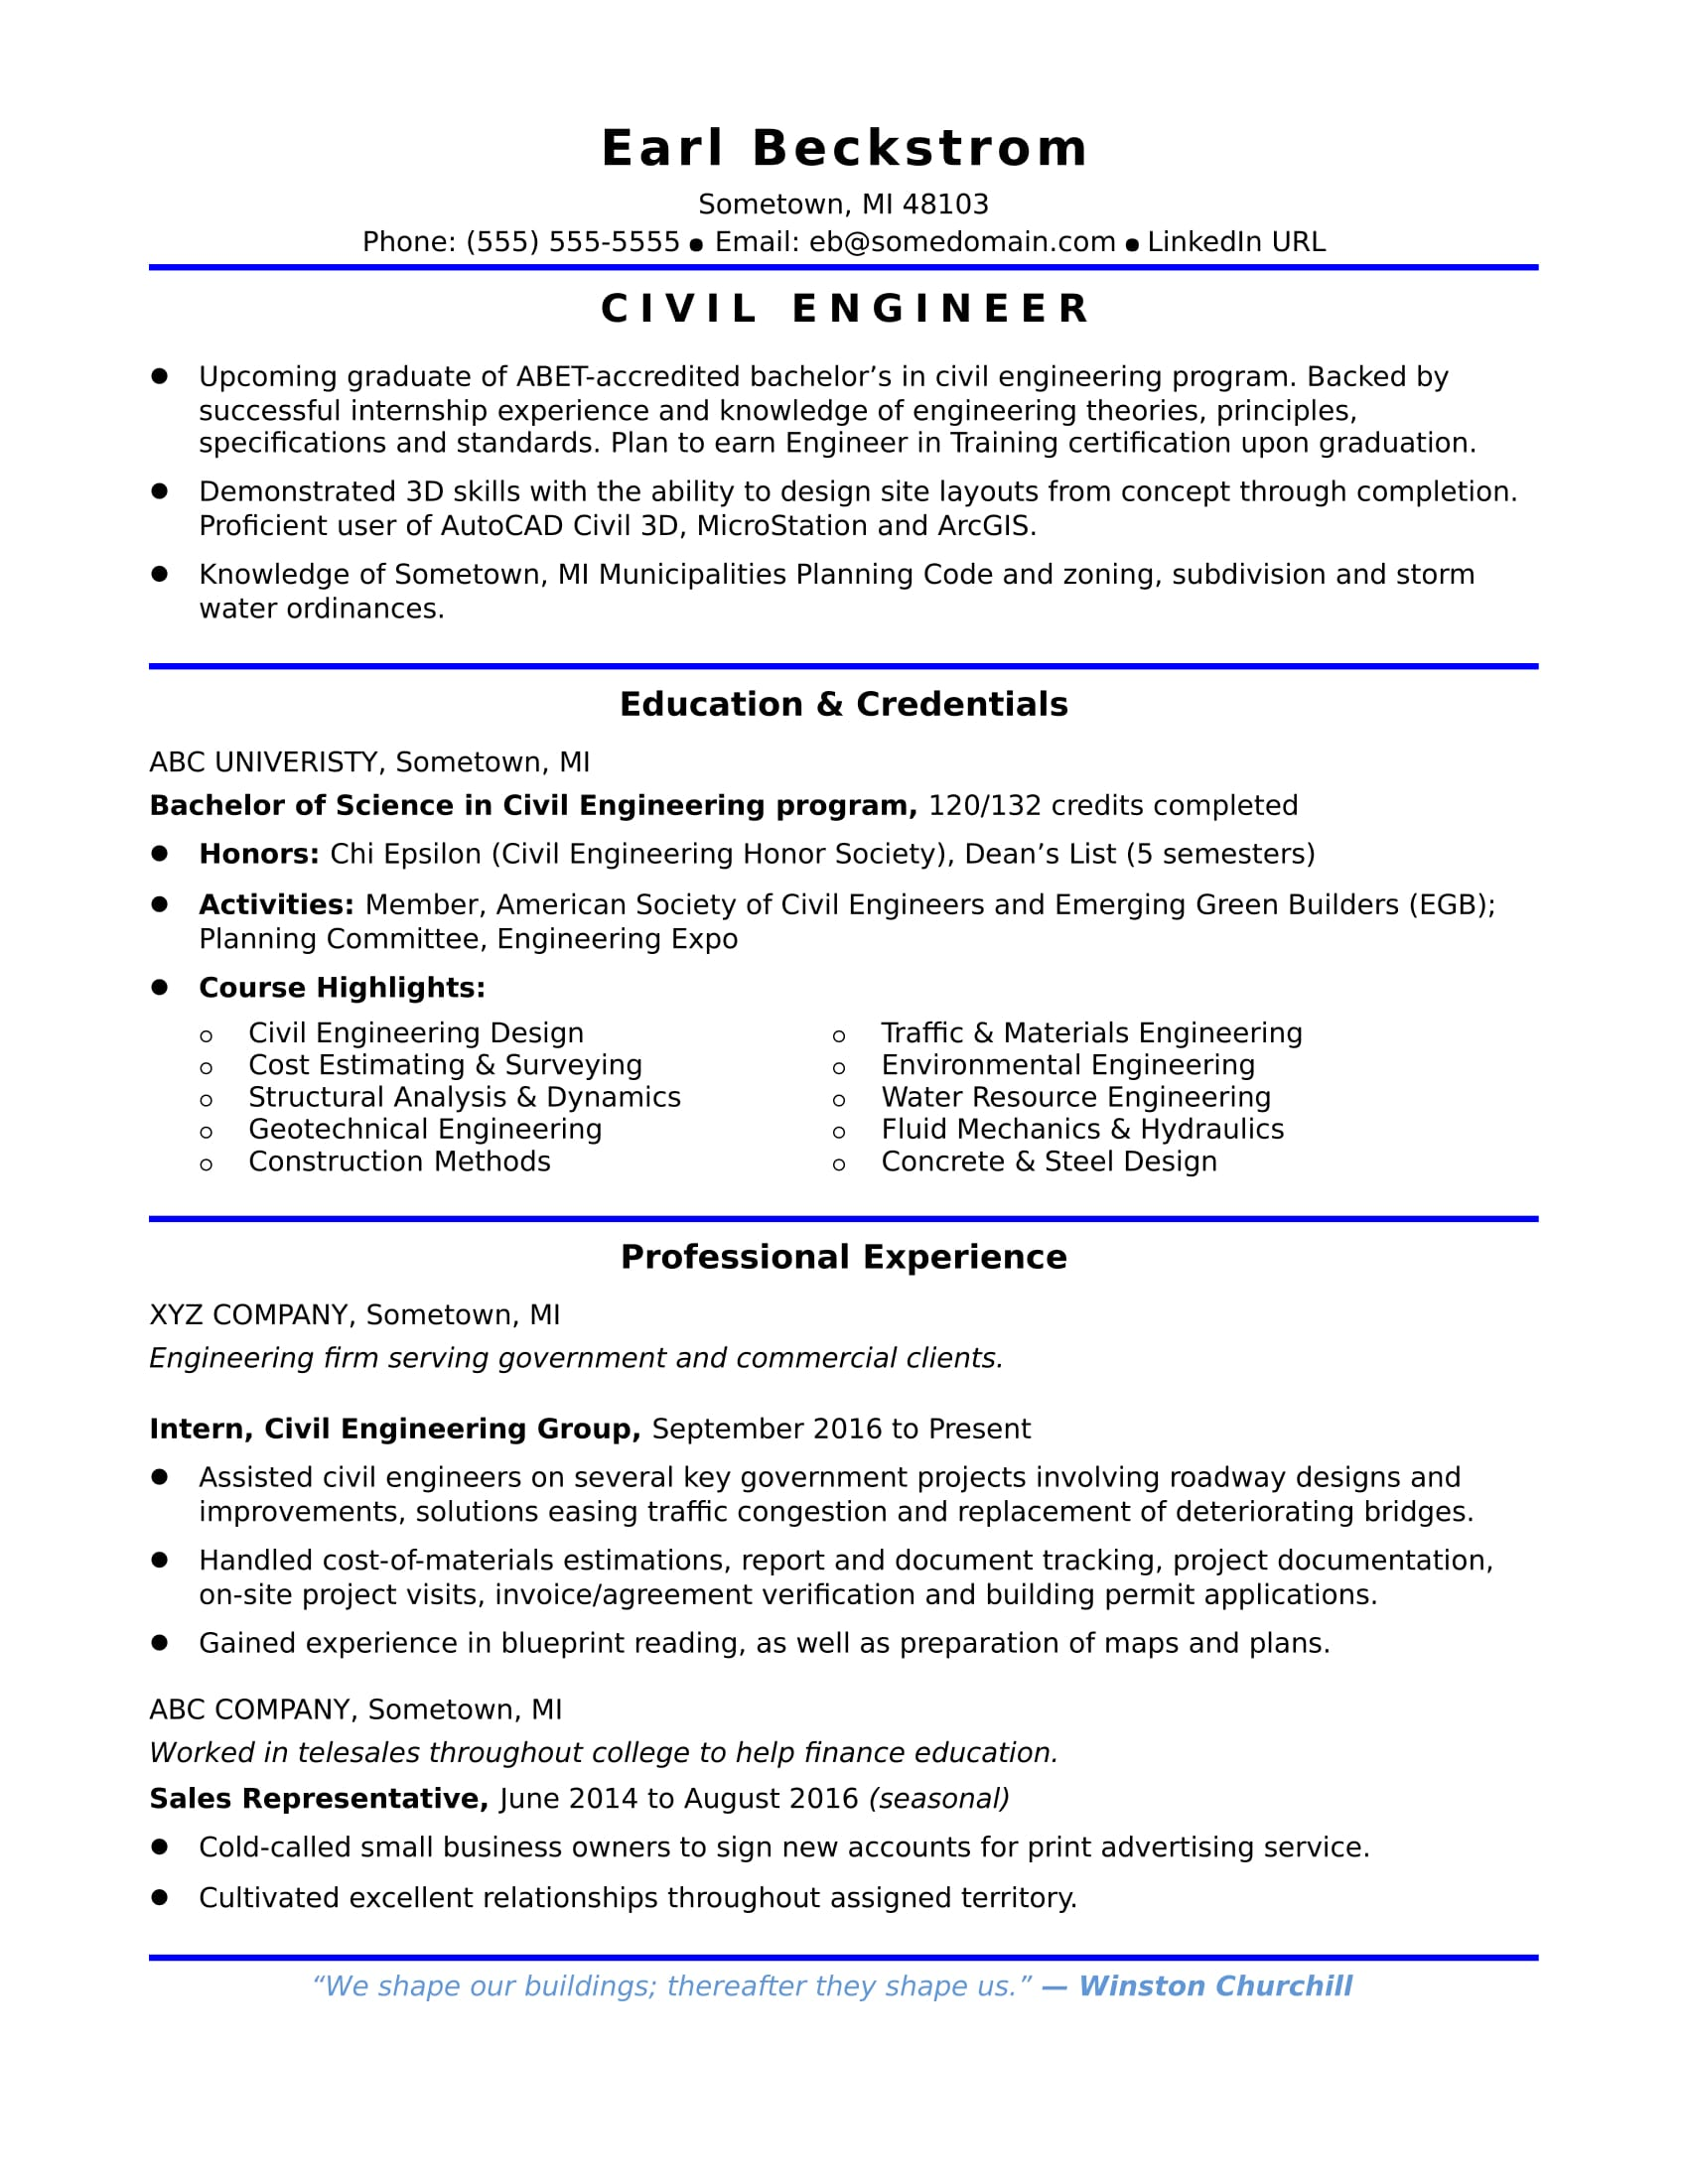 sample resume for an entry level civil engineer - Entry Level Engineering Resume